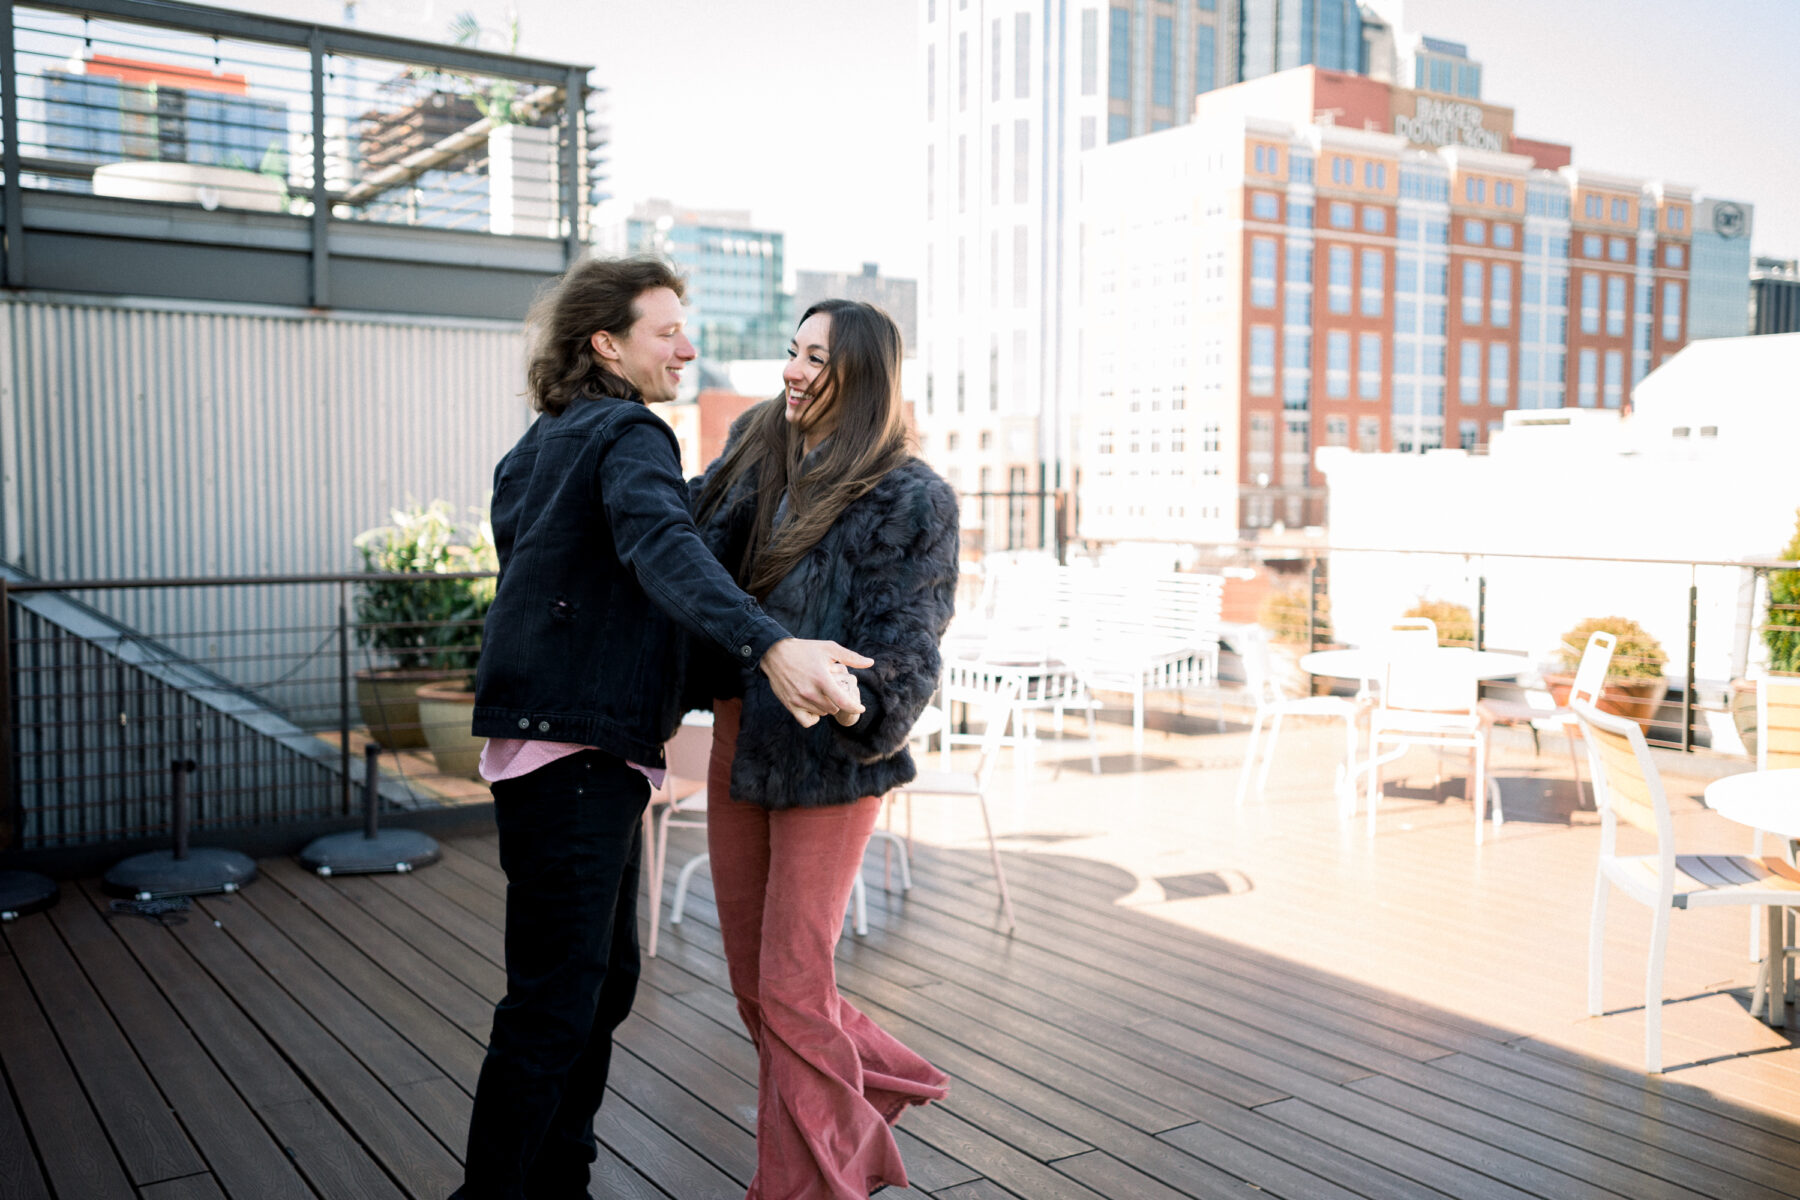 Super Cute Downtown Nashville Photo Session from CMS Photography featured on Nashville Bride Guide